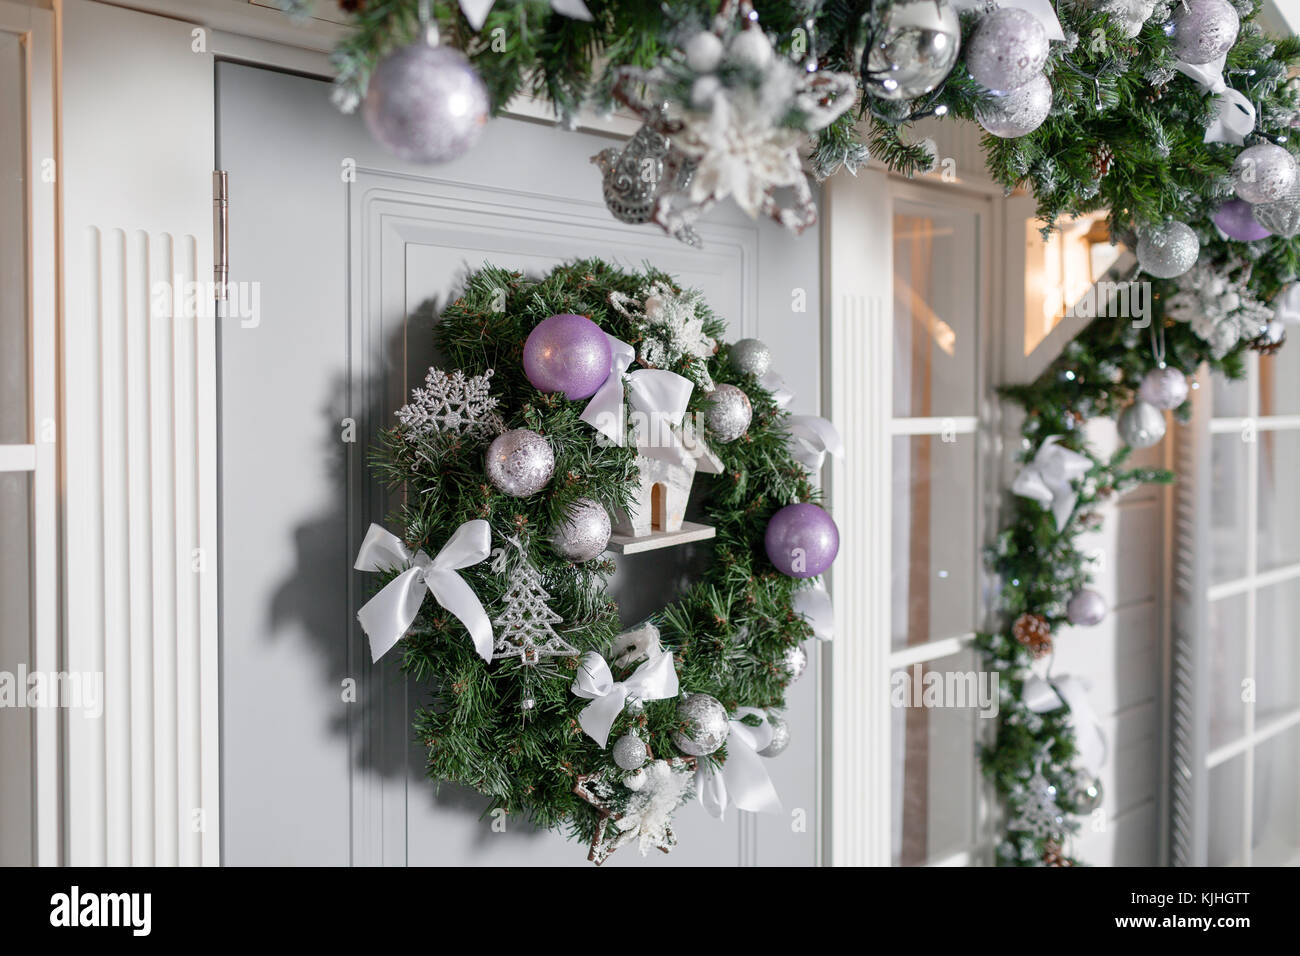 house entrance decorated for holidays. Christmas decoration. garland on corridor design, house building design, house front design, living room design, driveway design, house entryway design, building entry design, dining room design, house architecture design, house hall design, house walkway design, house stage design, house green design, house balcony design, church bookstore design, house key design, modern beach house interior design, house floor design, house study design, house playground design,